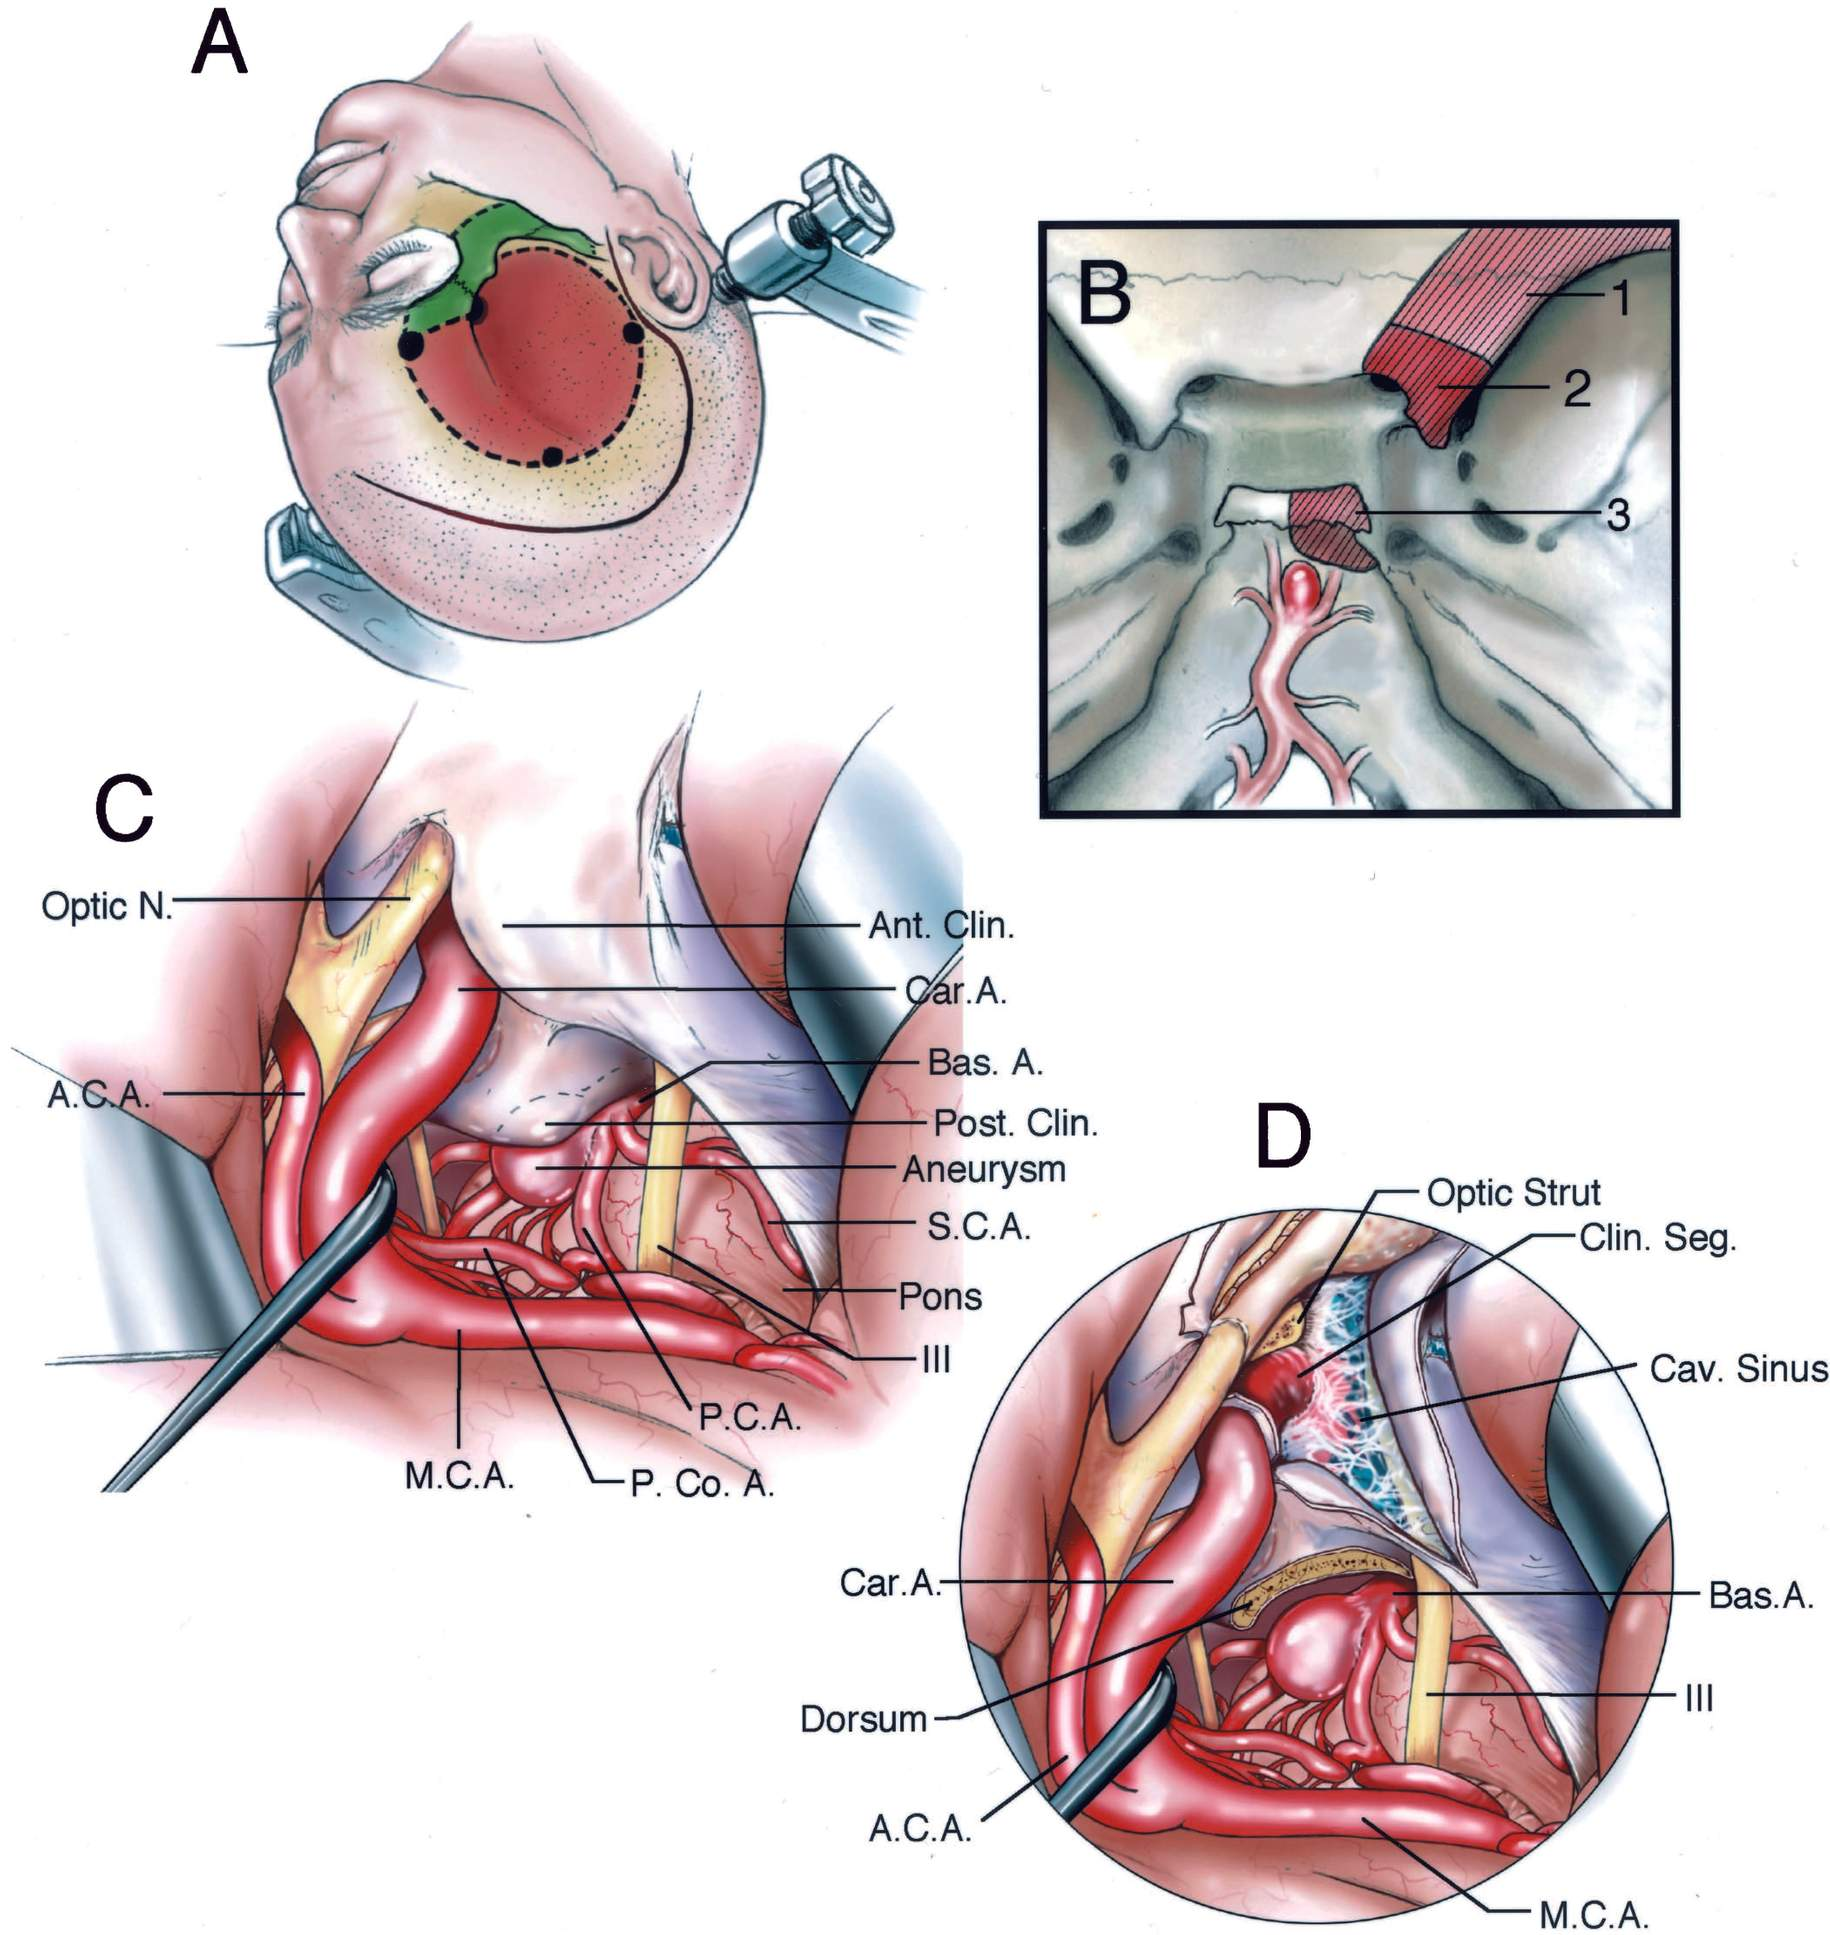 FIGURE 3.22. Orbitozygomatic transcavernous approach to a basilar apex aneurysm. A, head position and site of cranio-orbitozygomatic osteotomies. A pterional bone flap (red) is elevated as the first piece, and the orbitozygomatic osteotomy (green) is elevated as the second piece. The two-piece approach allows more of the orbital roof to be preserved than when the bone, included in the two osteotomies, is elevated as one piece. B, the bone removal (red hatched area) may include the sphenoid ridge (1), and anterior (2) and posterior clinoid processes and adjacent dorsum sellae (3). C, operative exposure of low basilar apex aneurysm. The exposure is directed between the carotid artery and oculomotor nerve. The posterior communicating artery has been elevated. The neck of the aneurysm is located behind the dorsum sellae and posterior clinoid process. D, the anterior clinoid process has been removed to expose the clinoid segment of the internal carotid artery and the roof of the cavernous sinus. The dura of the roof has been opened back to the level of the posterior clinoid process, and the posterior clinoid and adjacent part of the dorsum have been removed to expose the basilar artery below the neck of the aneurysm. A., artery; A.C.A., anterior cerebral artery; Ant., anterior; Bas., basilar; Car., carotid; Cav., cavernous; Clin., clinoid; M.C.A., middle cerebral artery; N., nerve; P.C.A., posterior cerebral artery; P.Co.A., posterior communicating artery; Post., posterior; S.C.A., superior cerebellar artery; Seg., segment.